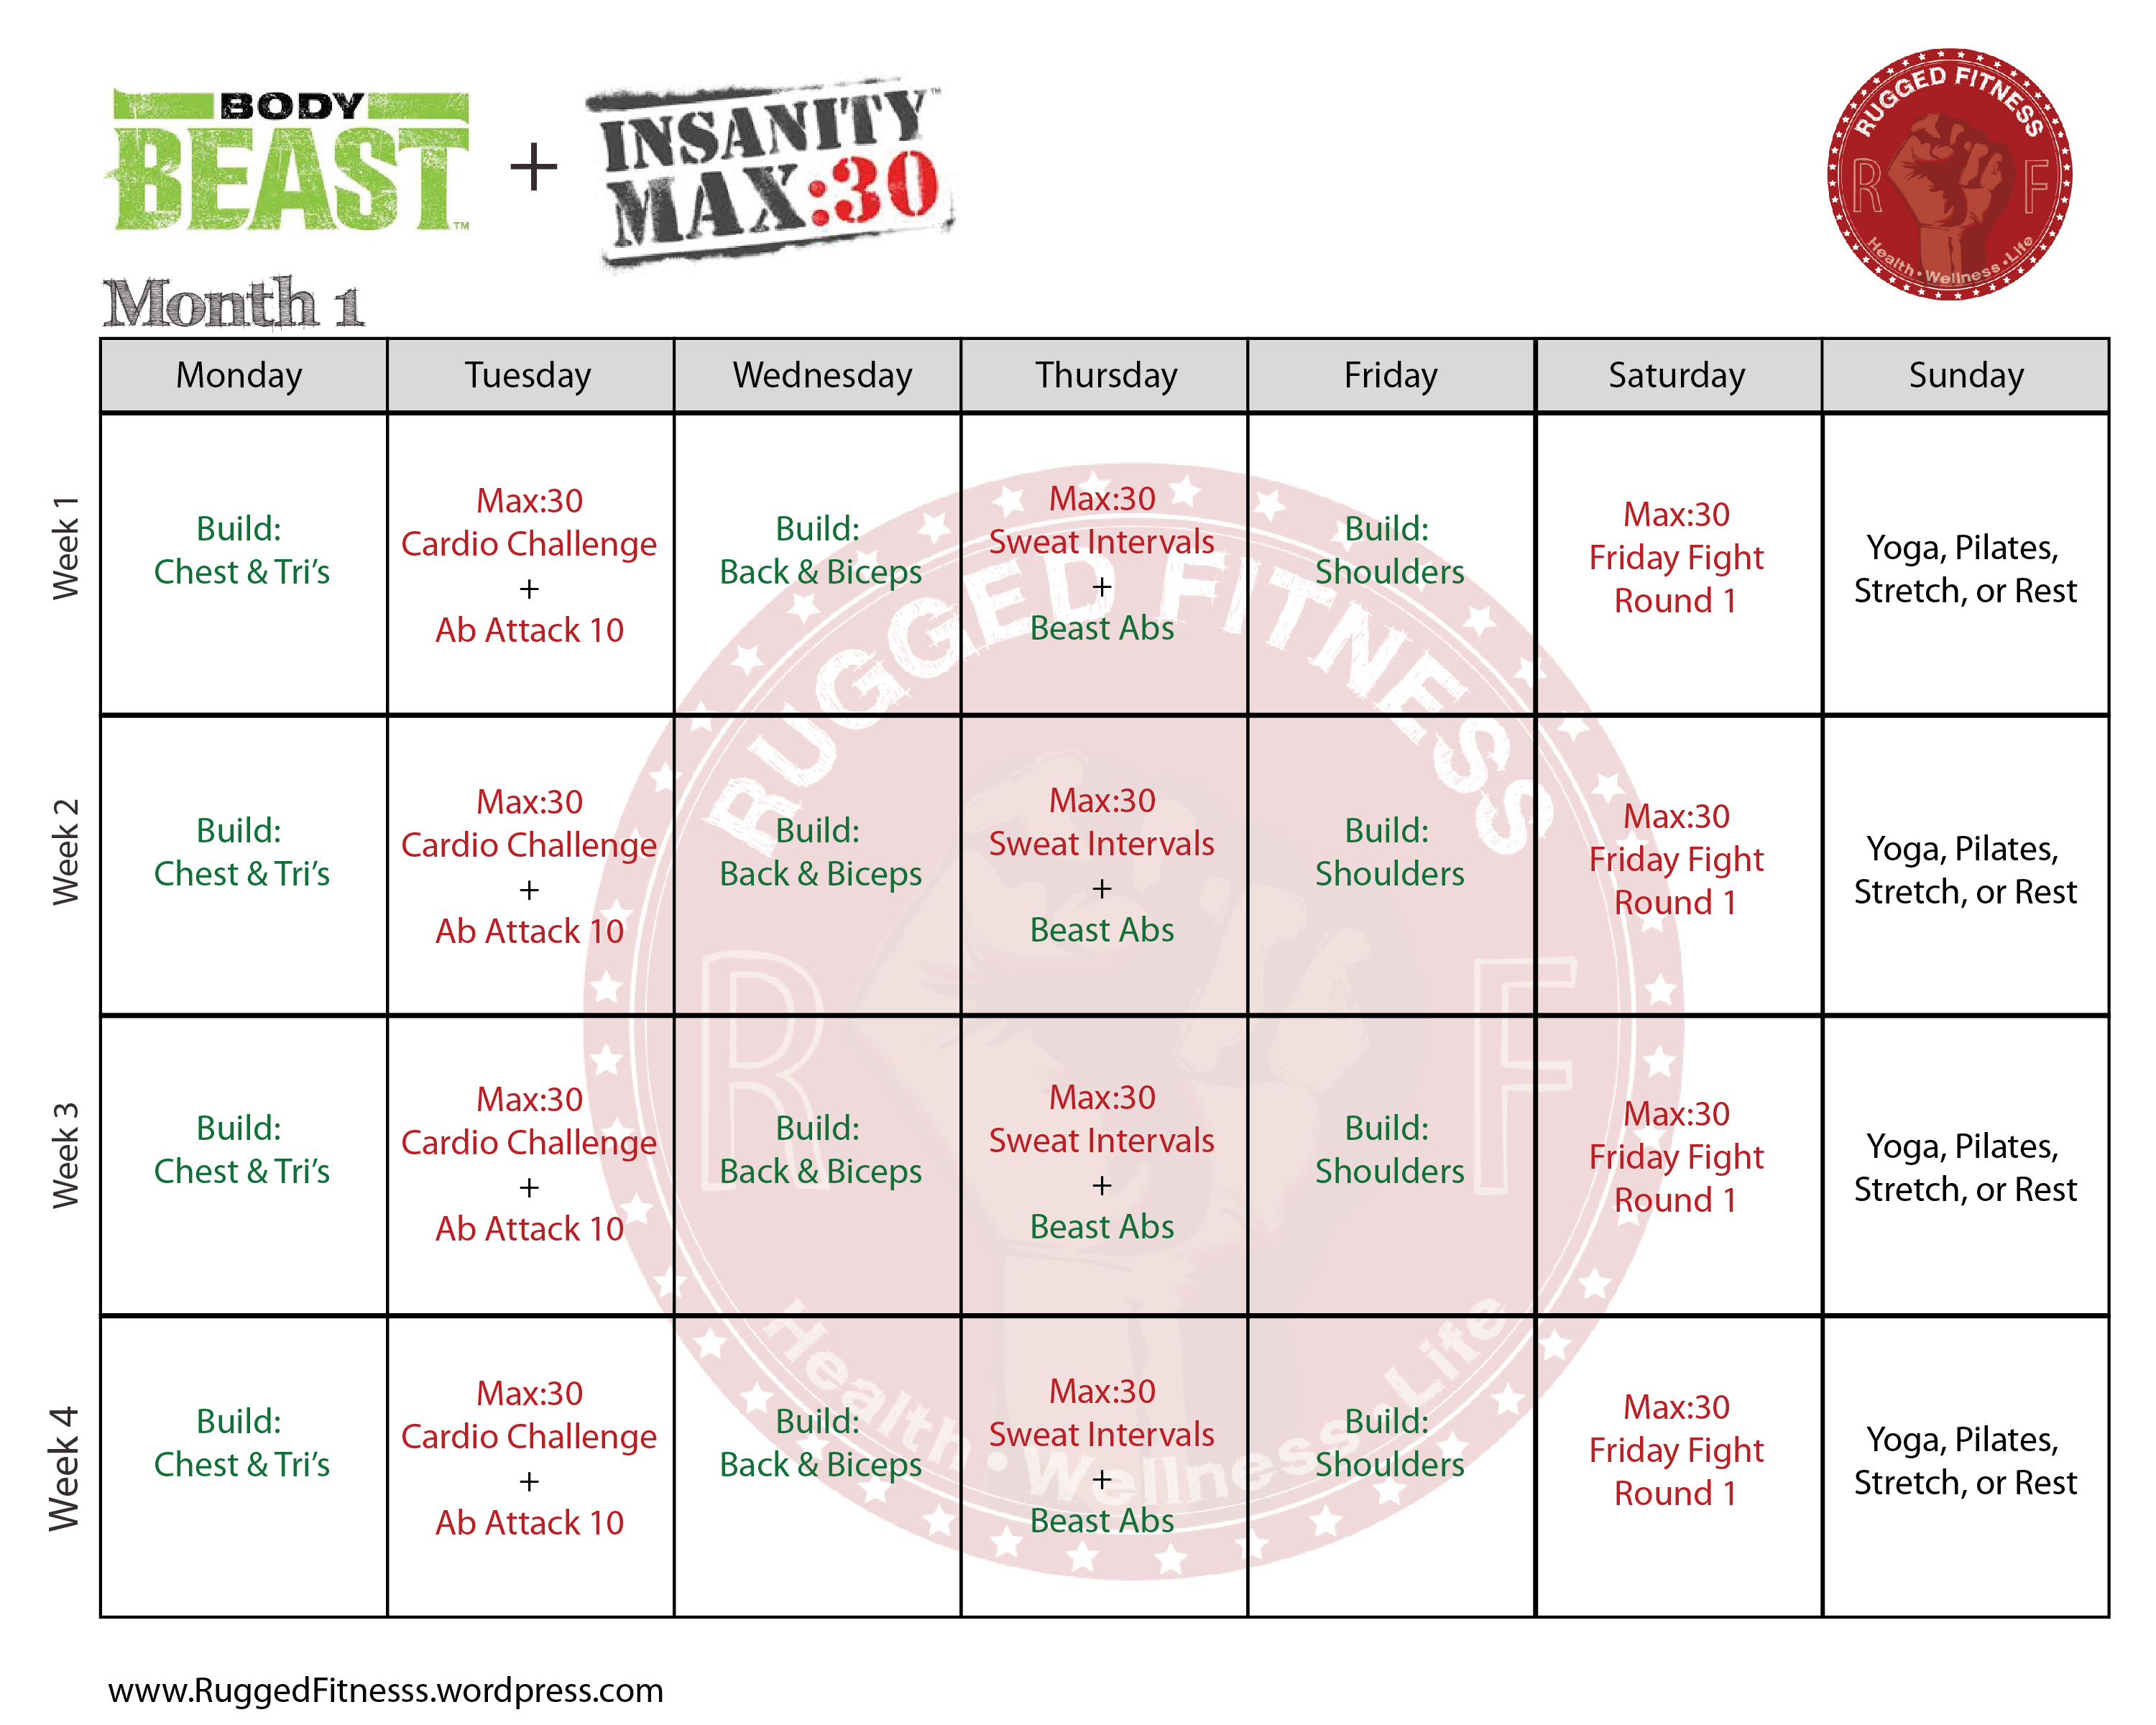 Body Beast + Insanity: Max 30 Hybrid Schedule | Rugged Fitnesss in 21 Day Fix Hybrid Calendar